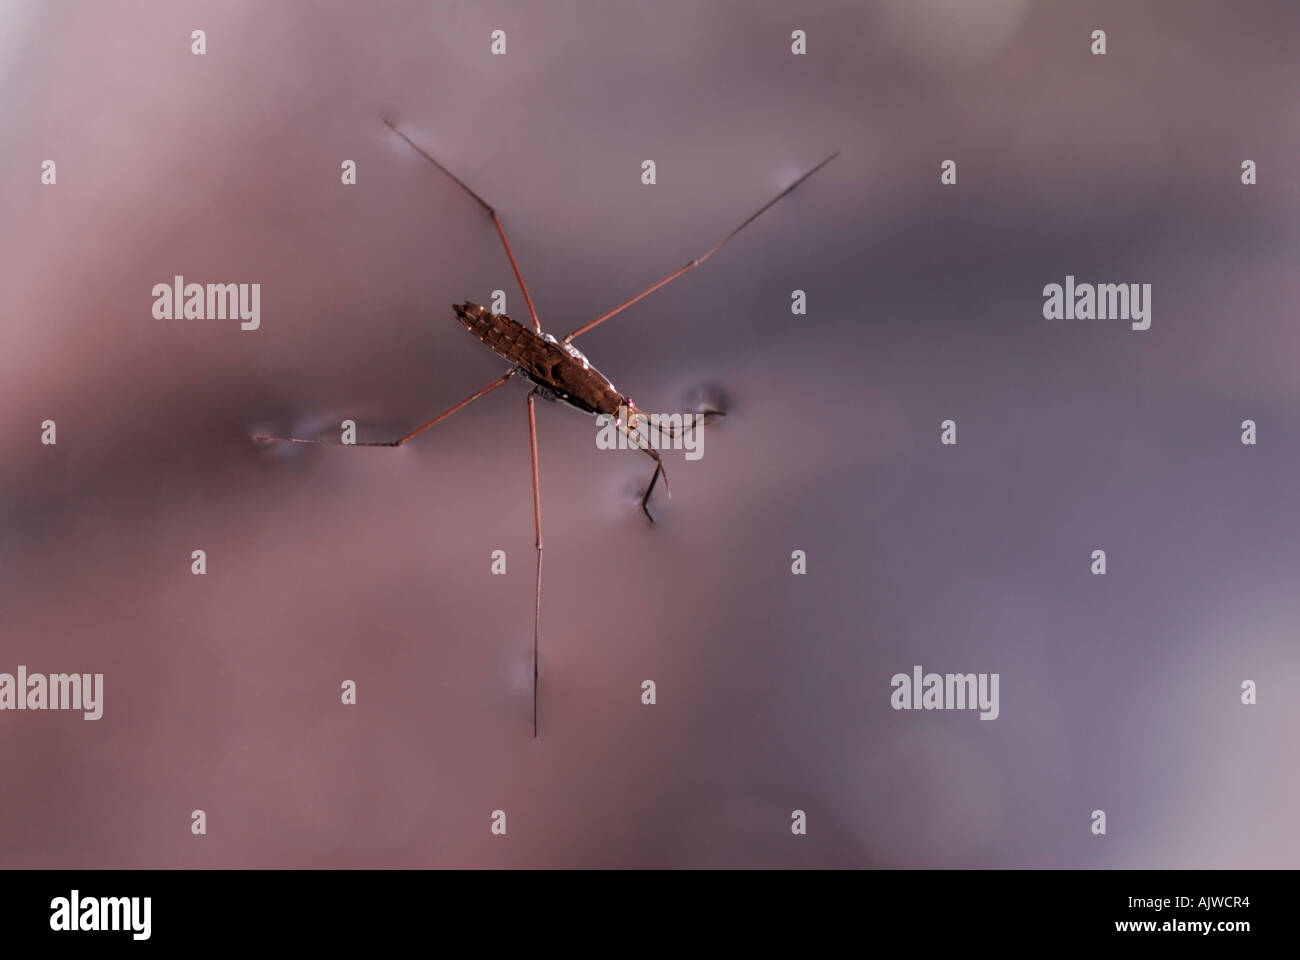 Water strider, Gerris remigis, using surface tension to walk on water, with colorful foliage reflections - Stock Image